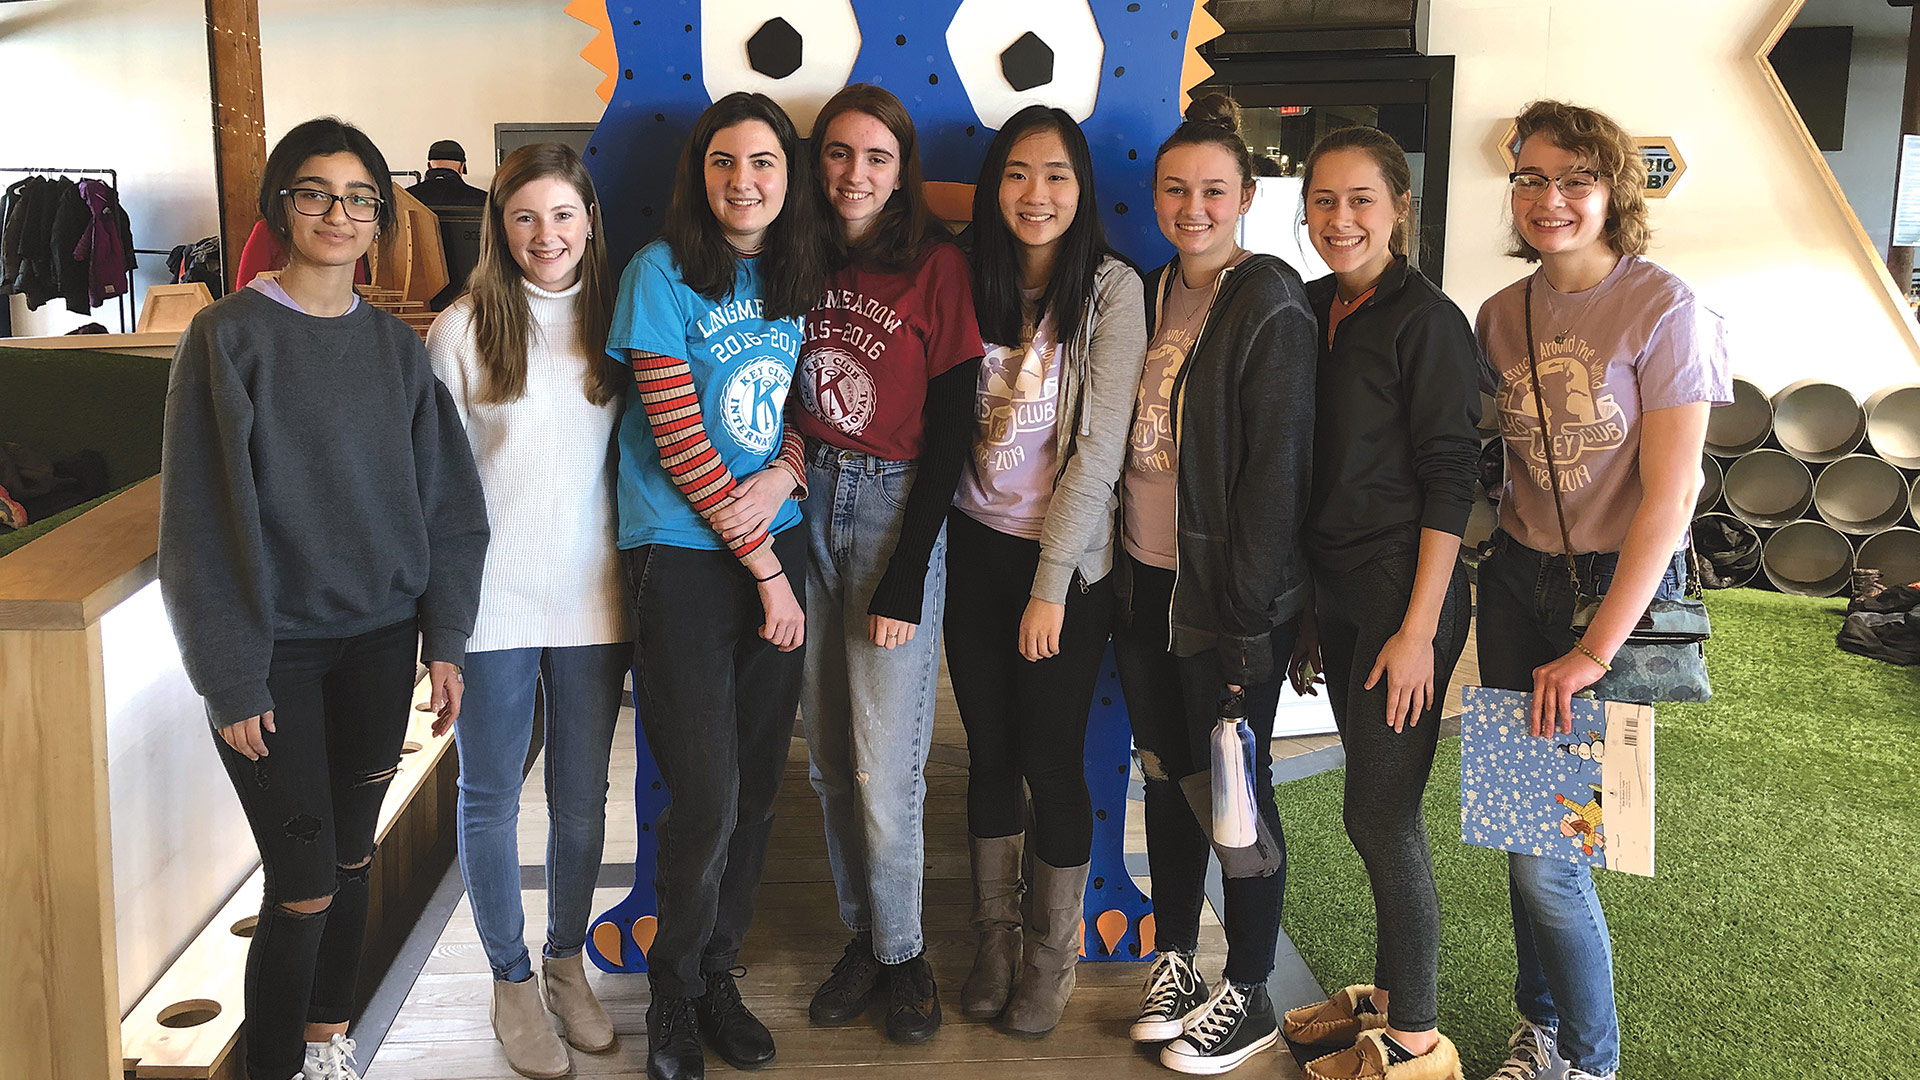 Longmeadow High School Key Club volunteers, from left, Emily Ibrahimov, Meghan Desrosiers, Sara Creapo, Kate Gelinas, Shirley Yuan, Abby Chiz, Olivia Anderson, and Miranda Vellenga